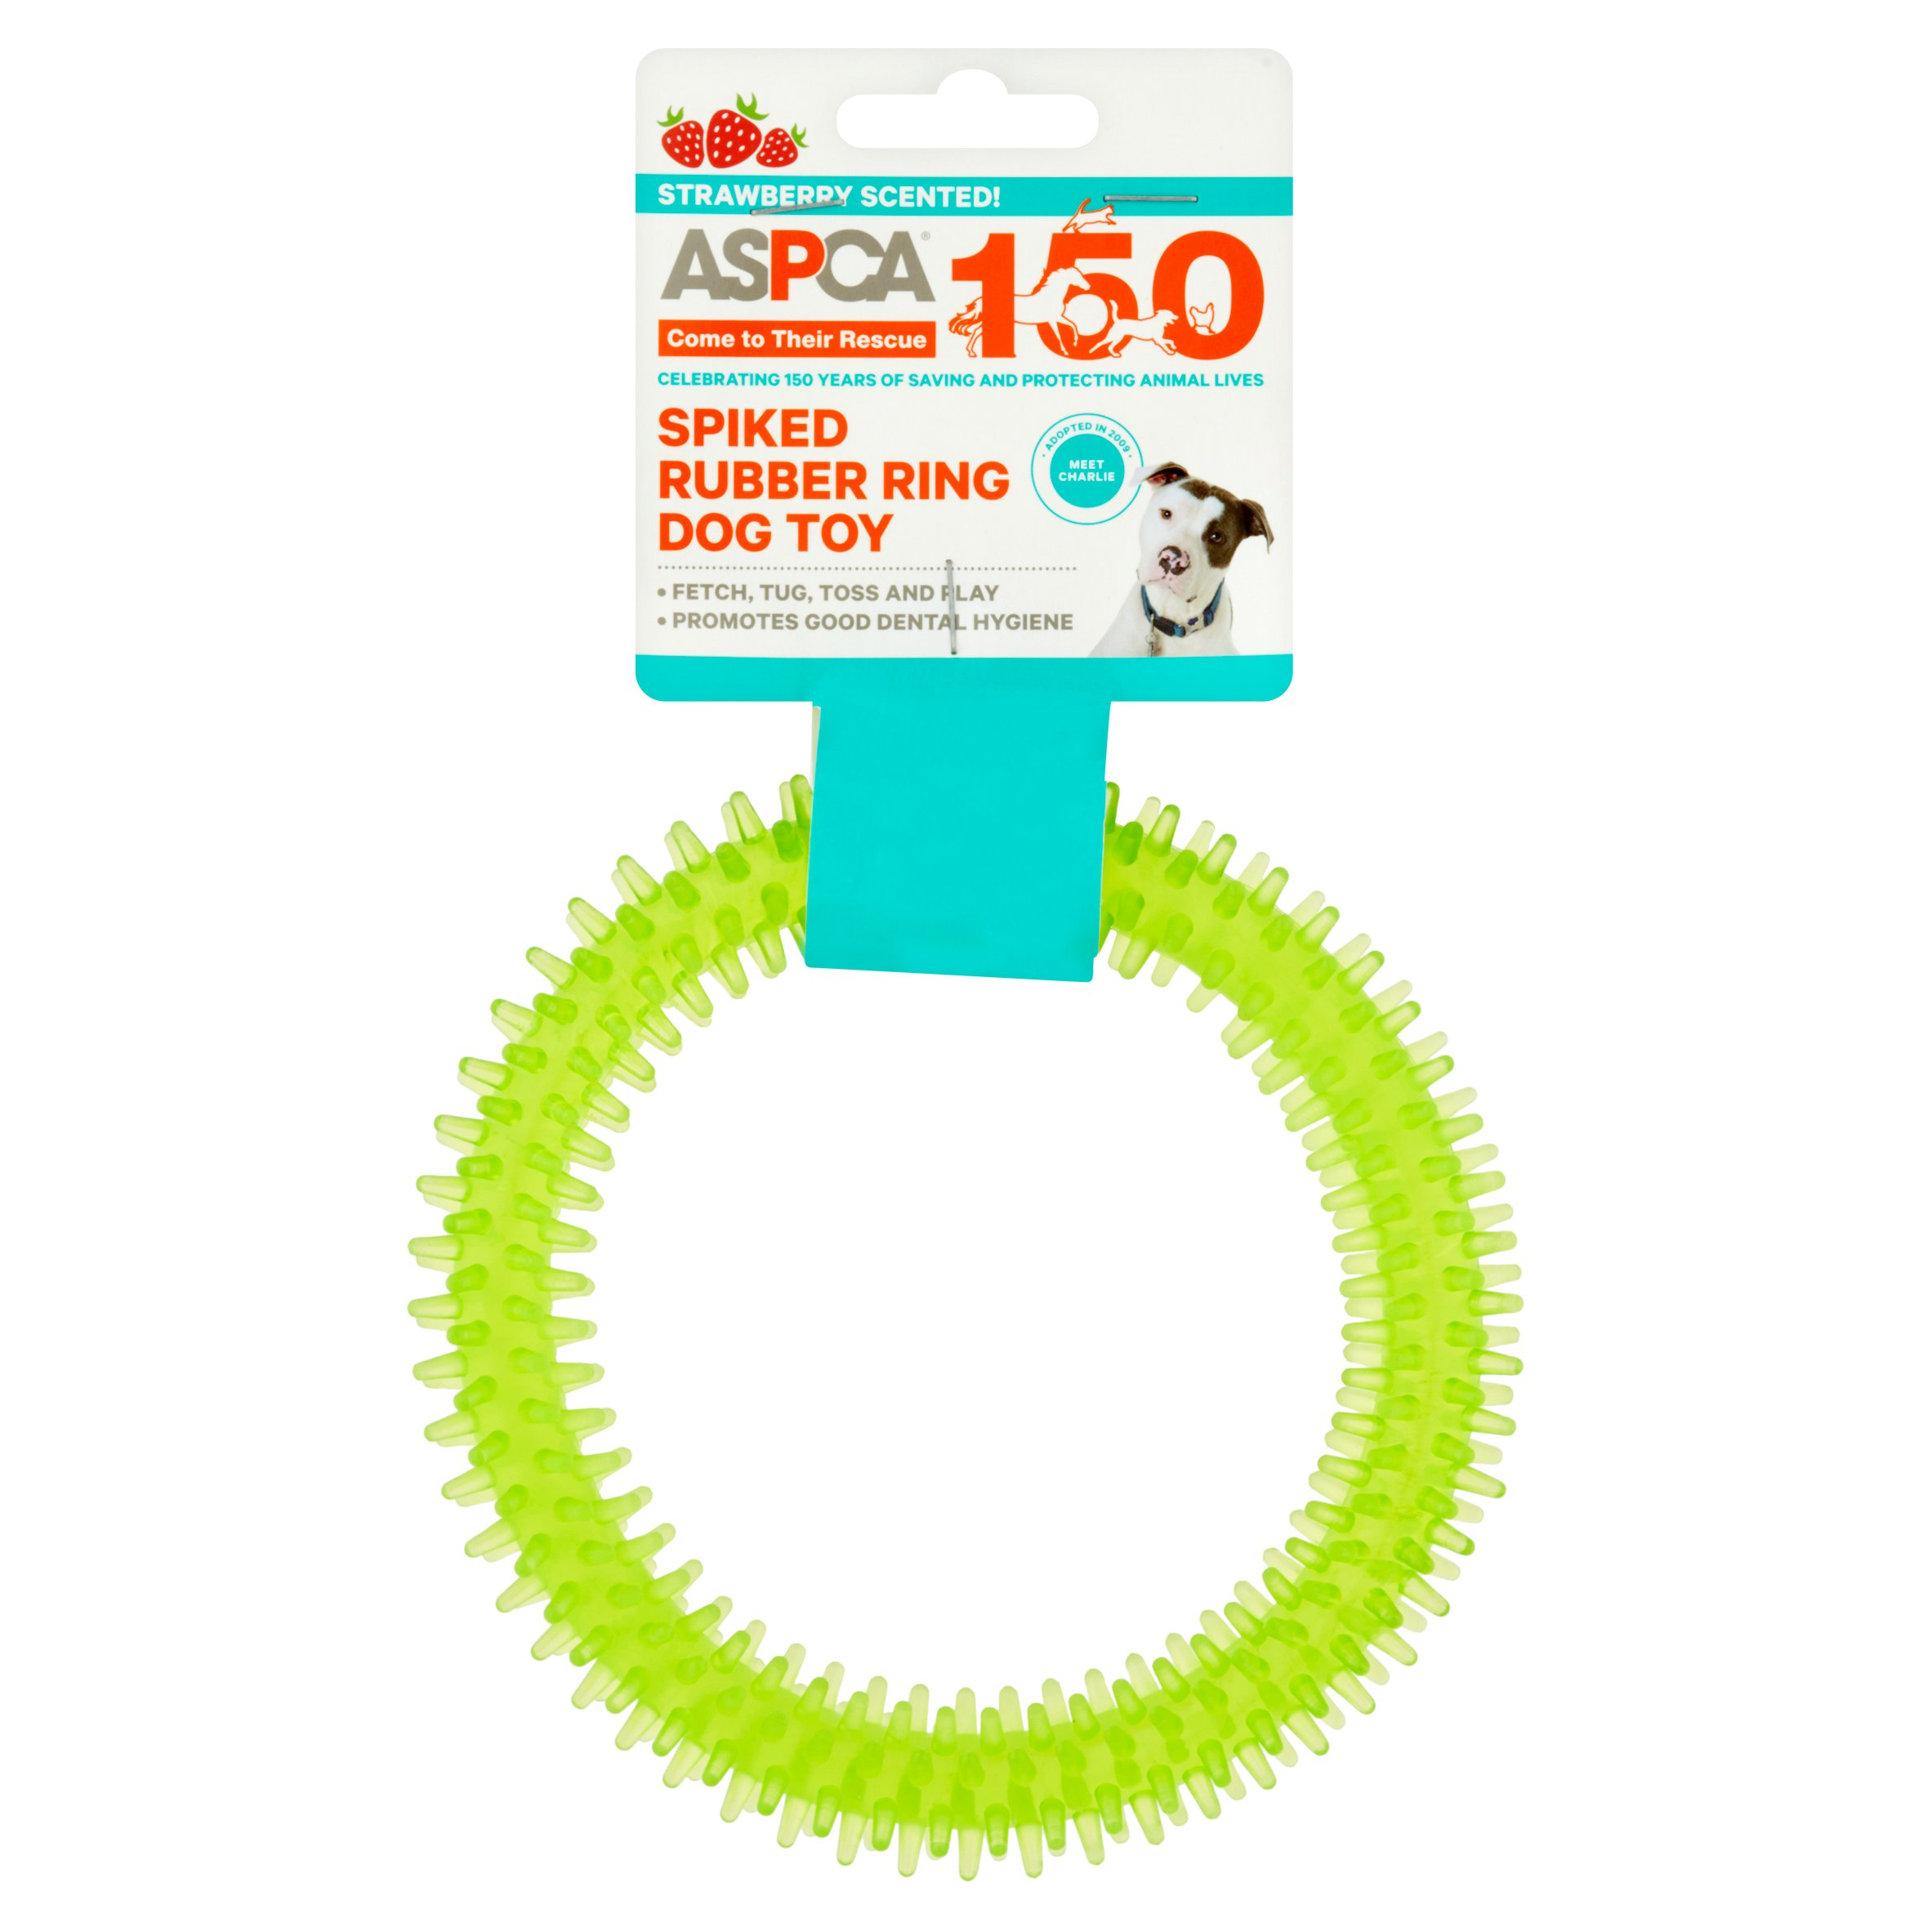 ASPCA Spiked Rubber Ring Dog Toy